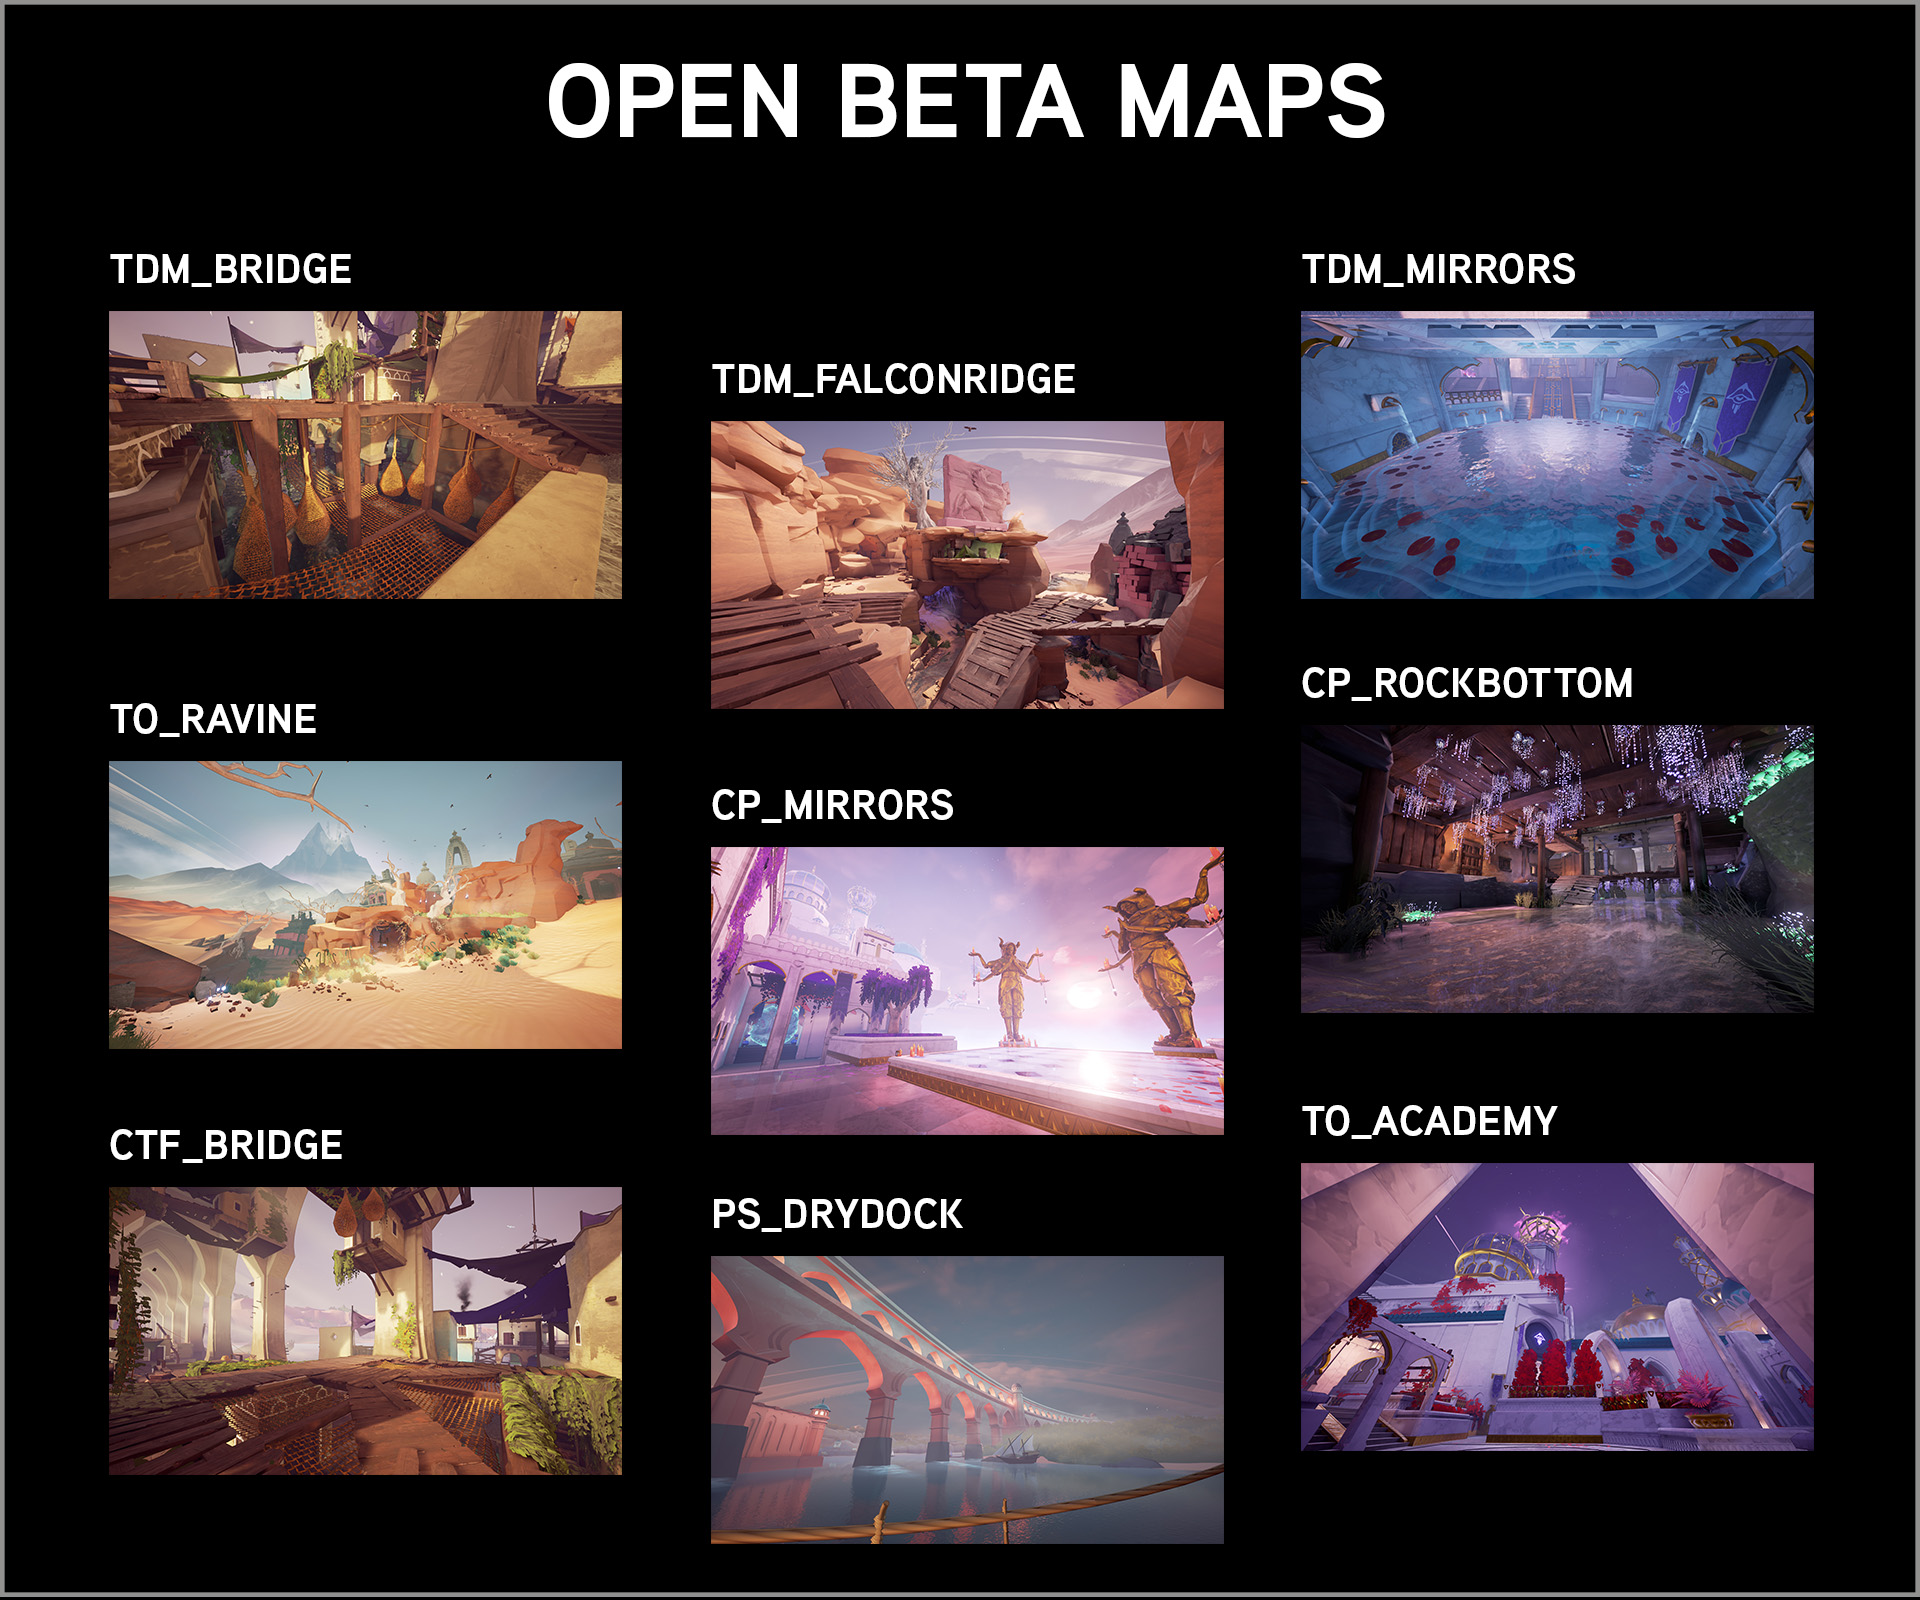 maps list open beta